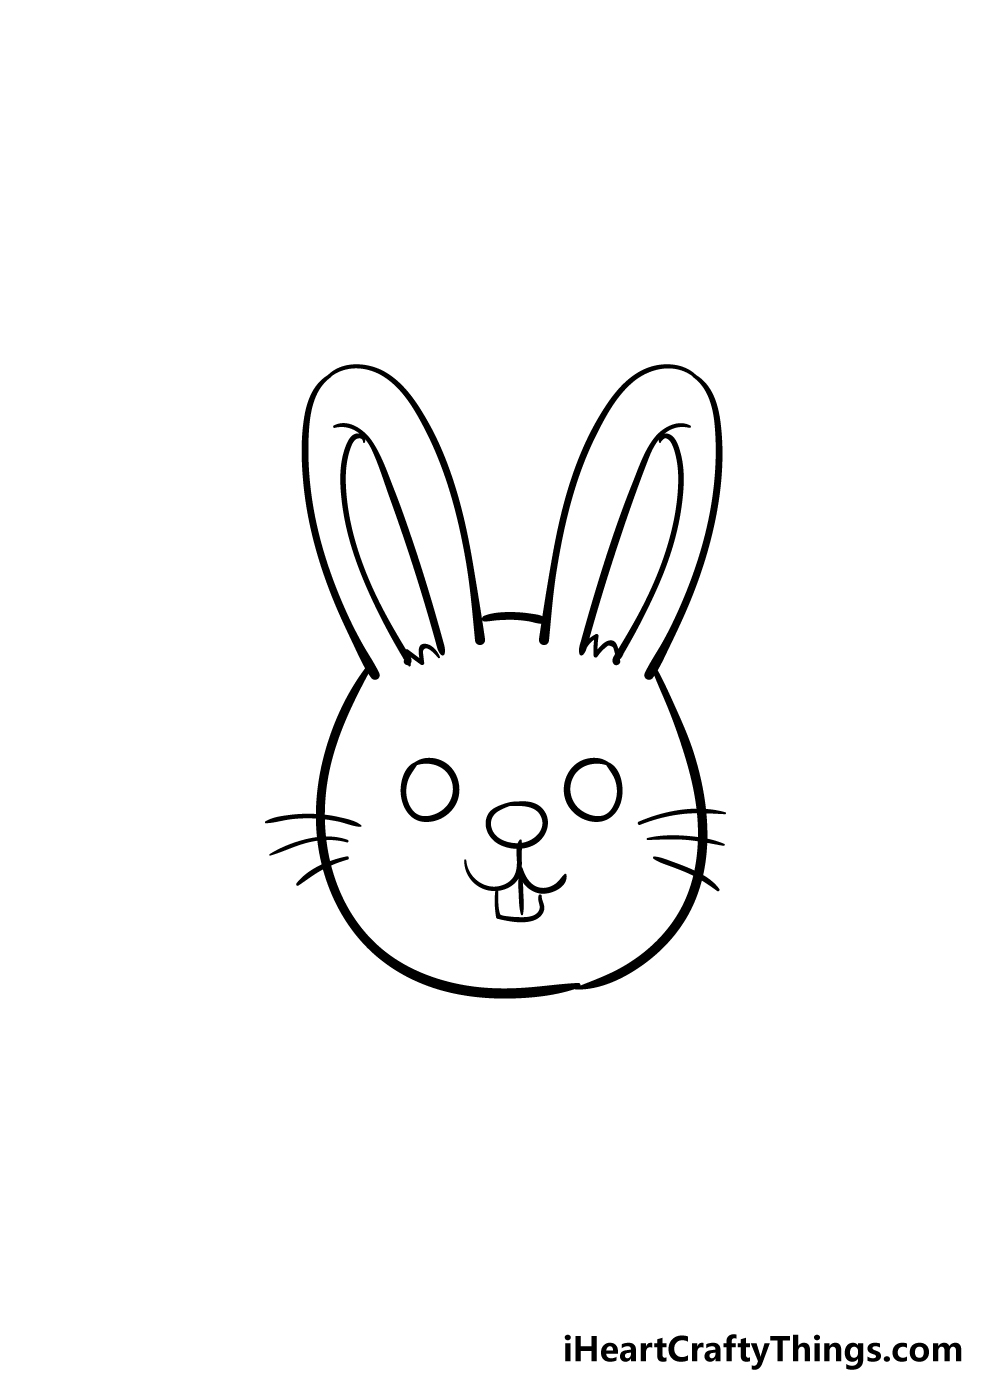 bunny face drawing step 5